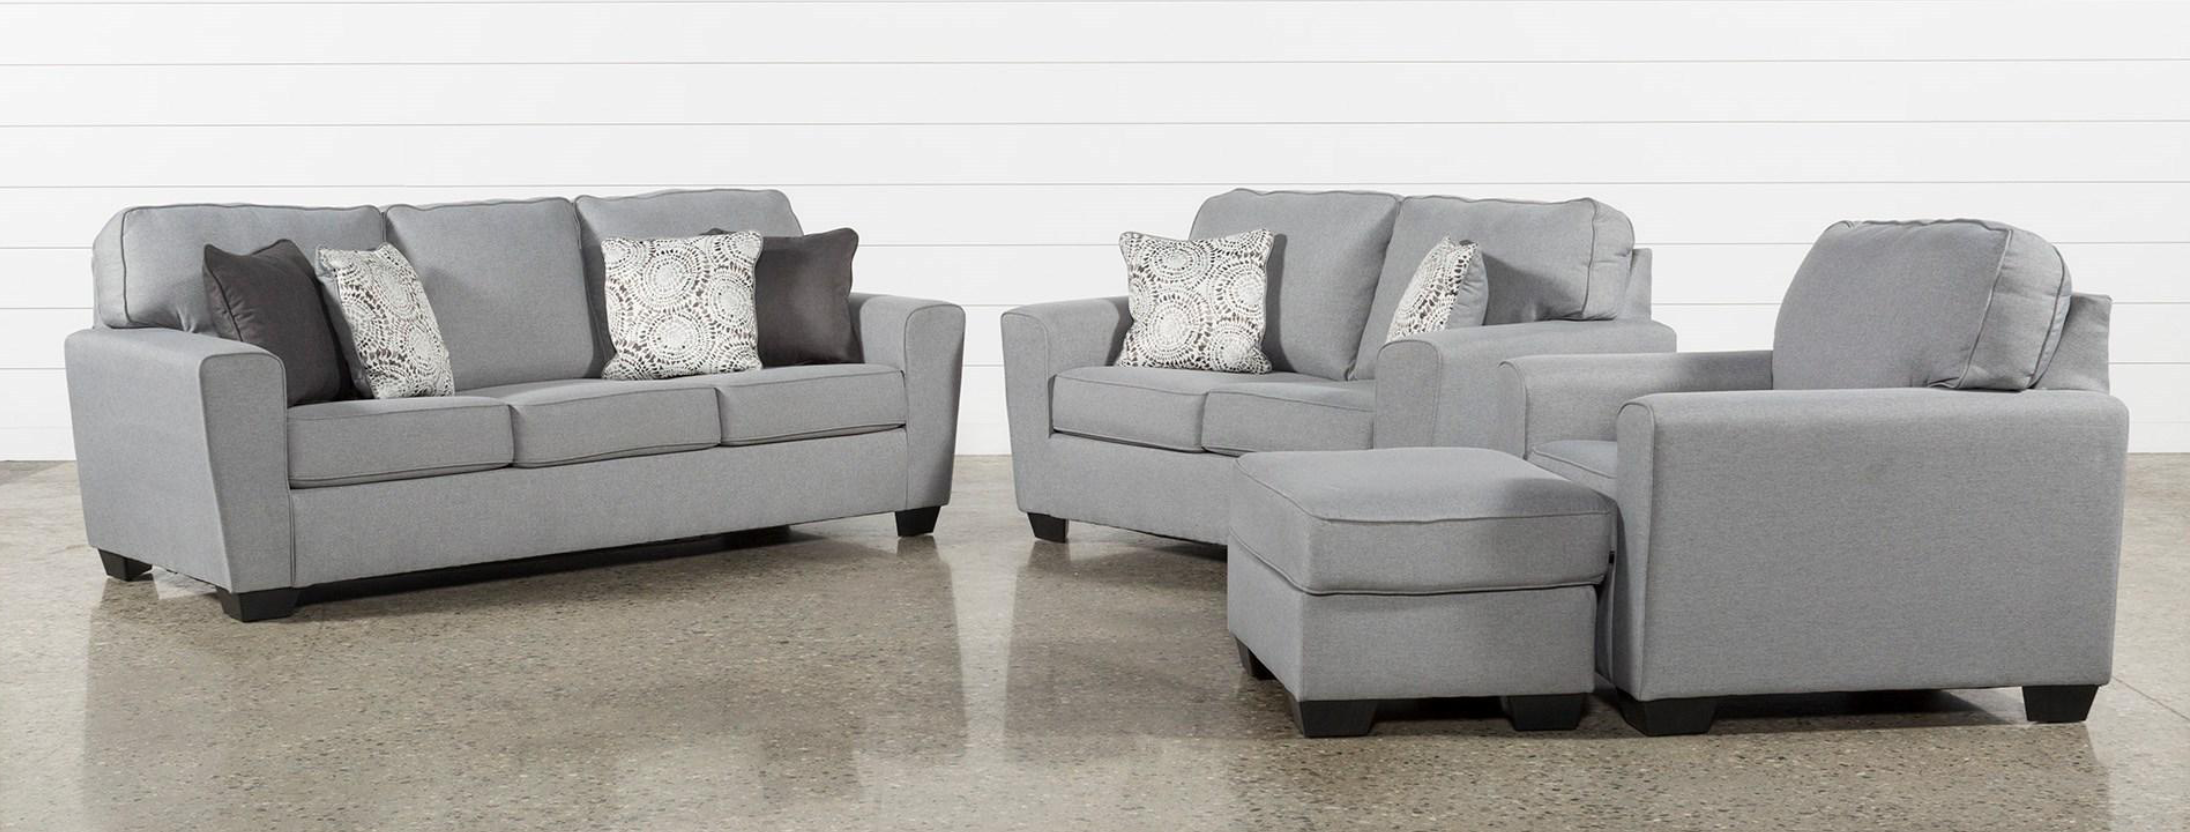 Best Mcdade Ash 4 Piece Living Room Set With Images 4 Piece 400 x 300